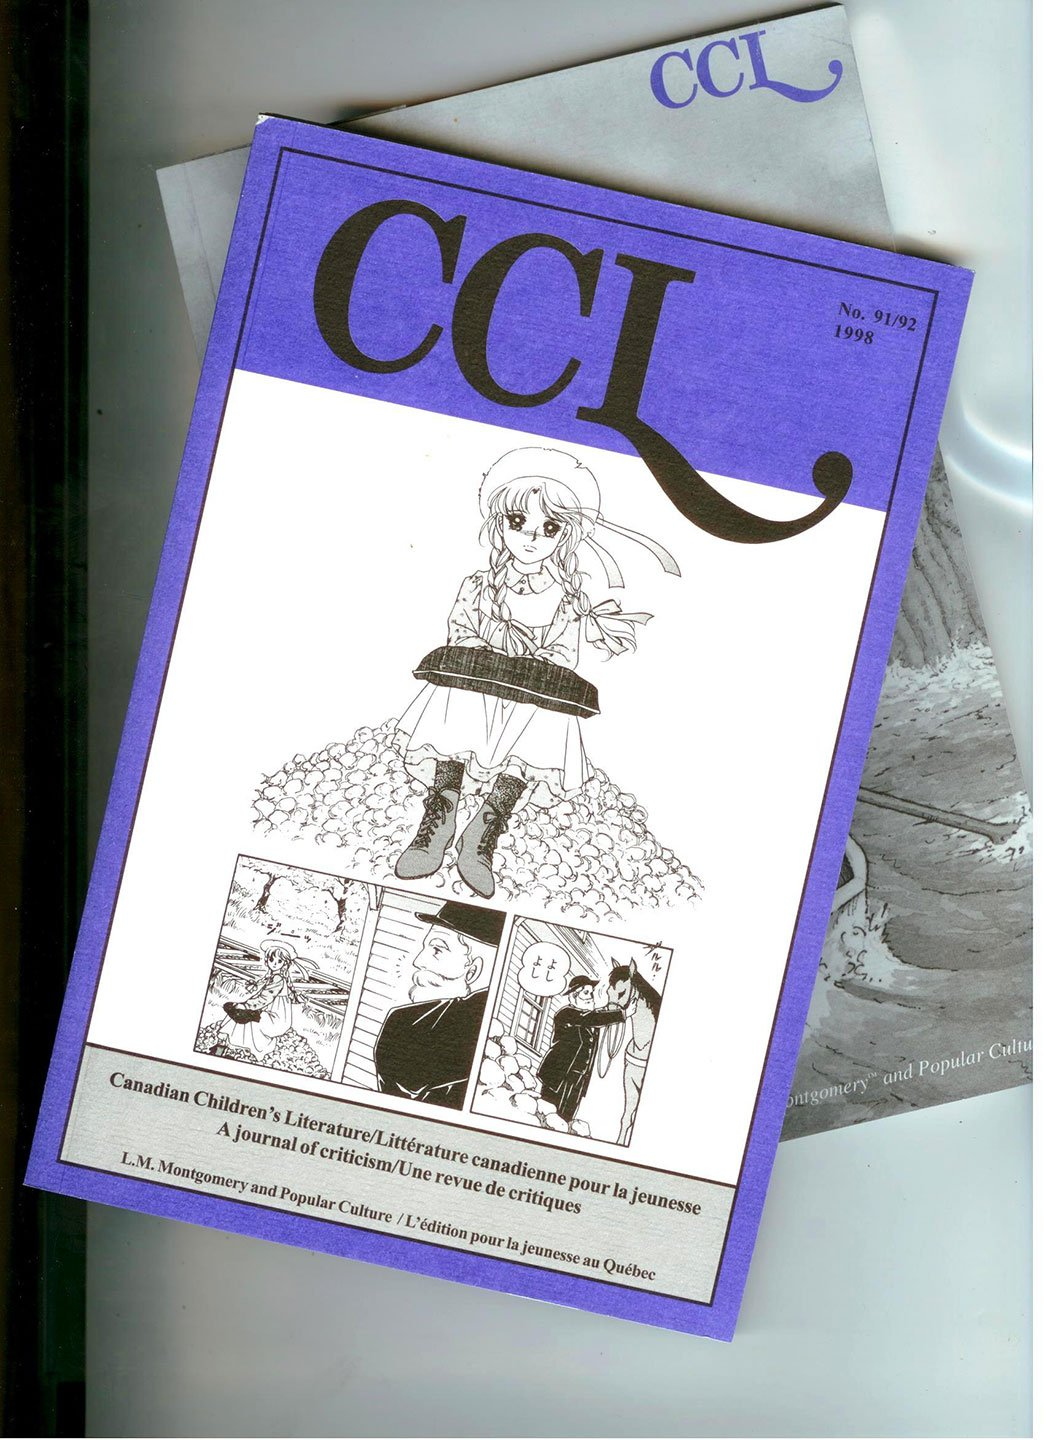 Canadian Children's Literature: A journal of criticism: L. M. Montgomery and Popular Culture Parts I and II